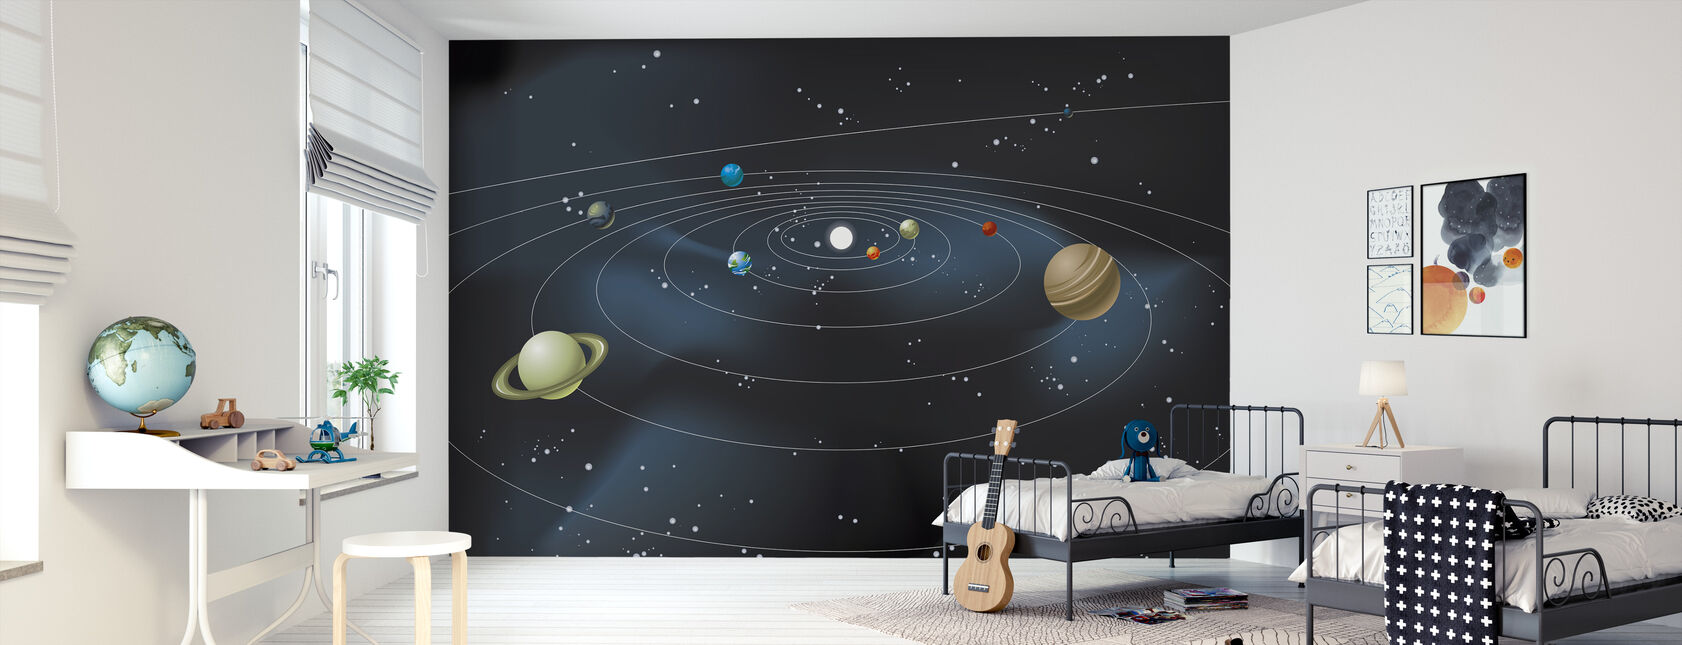 Planetary System - Wallpaper - Kids Room